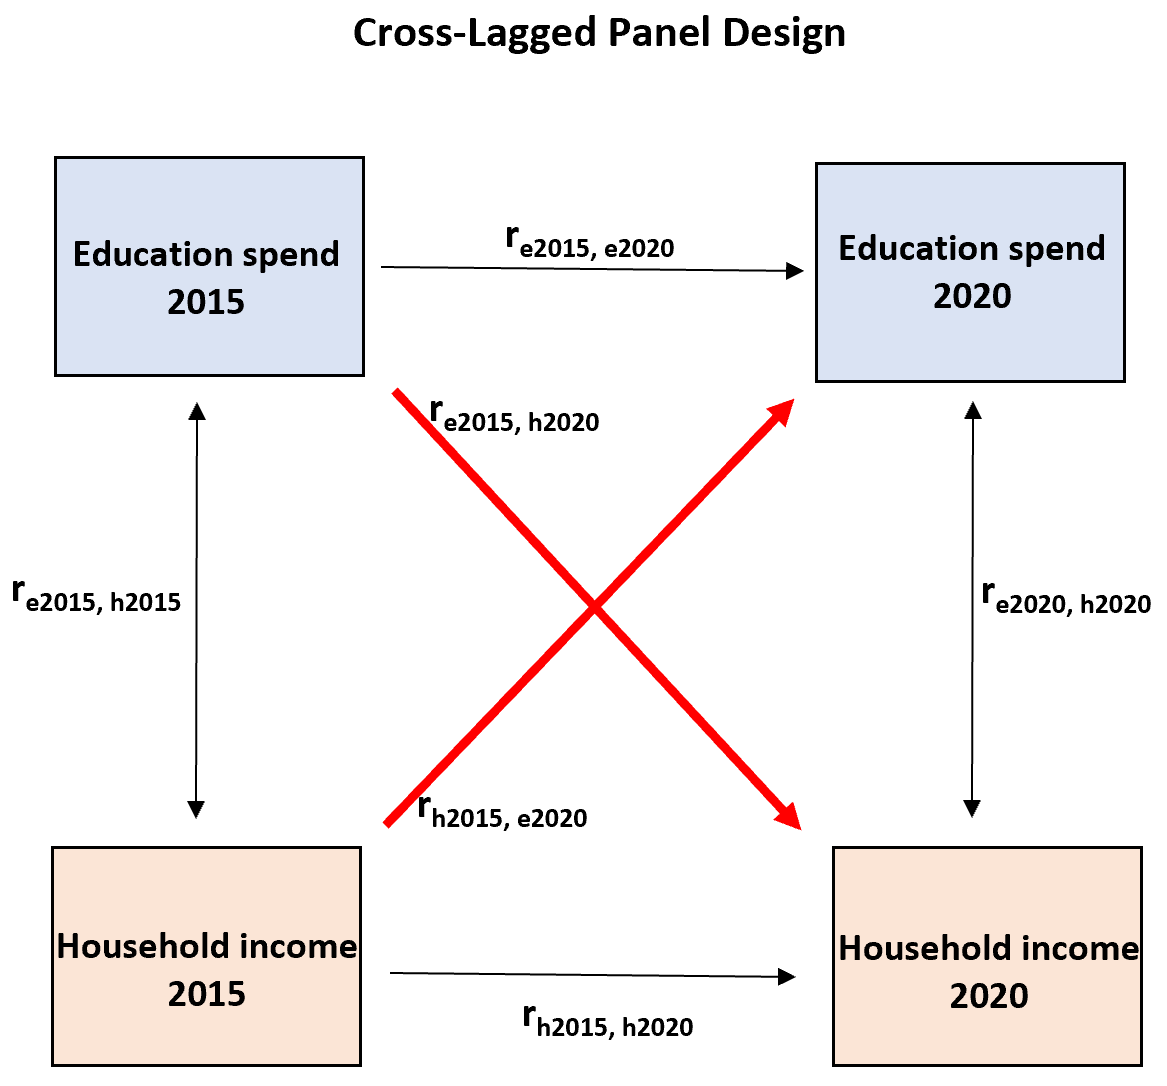 Cross-lagged panel model